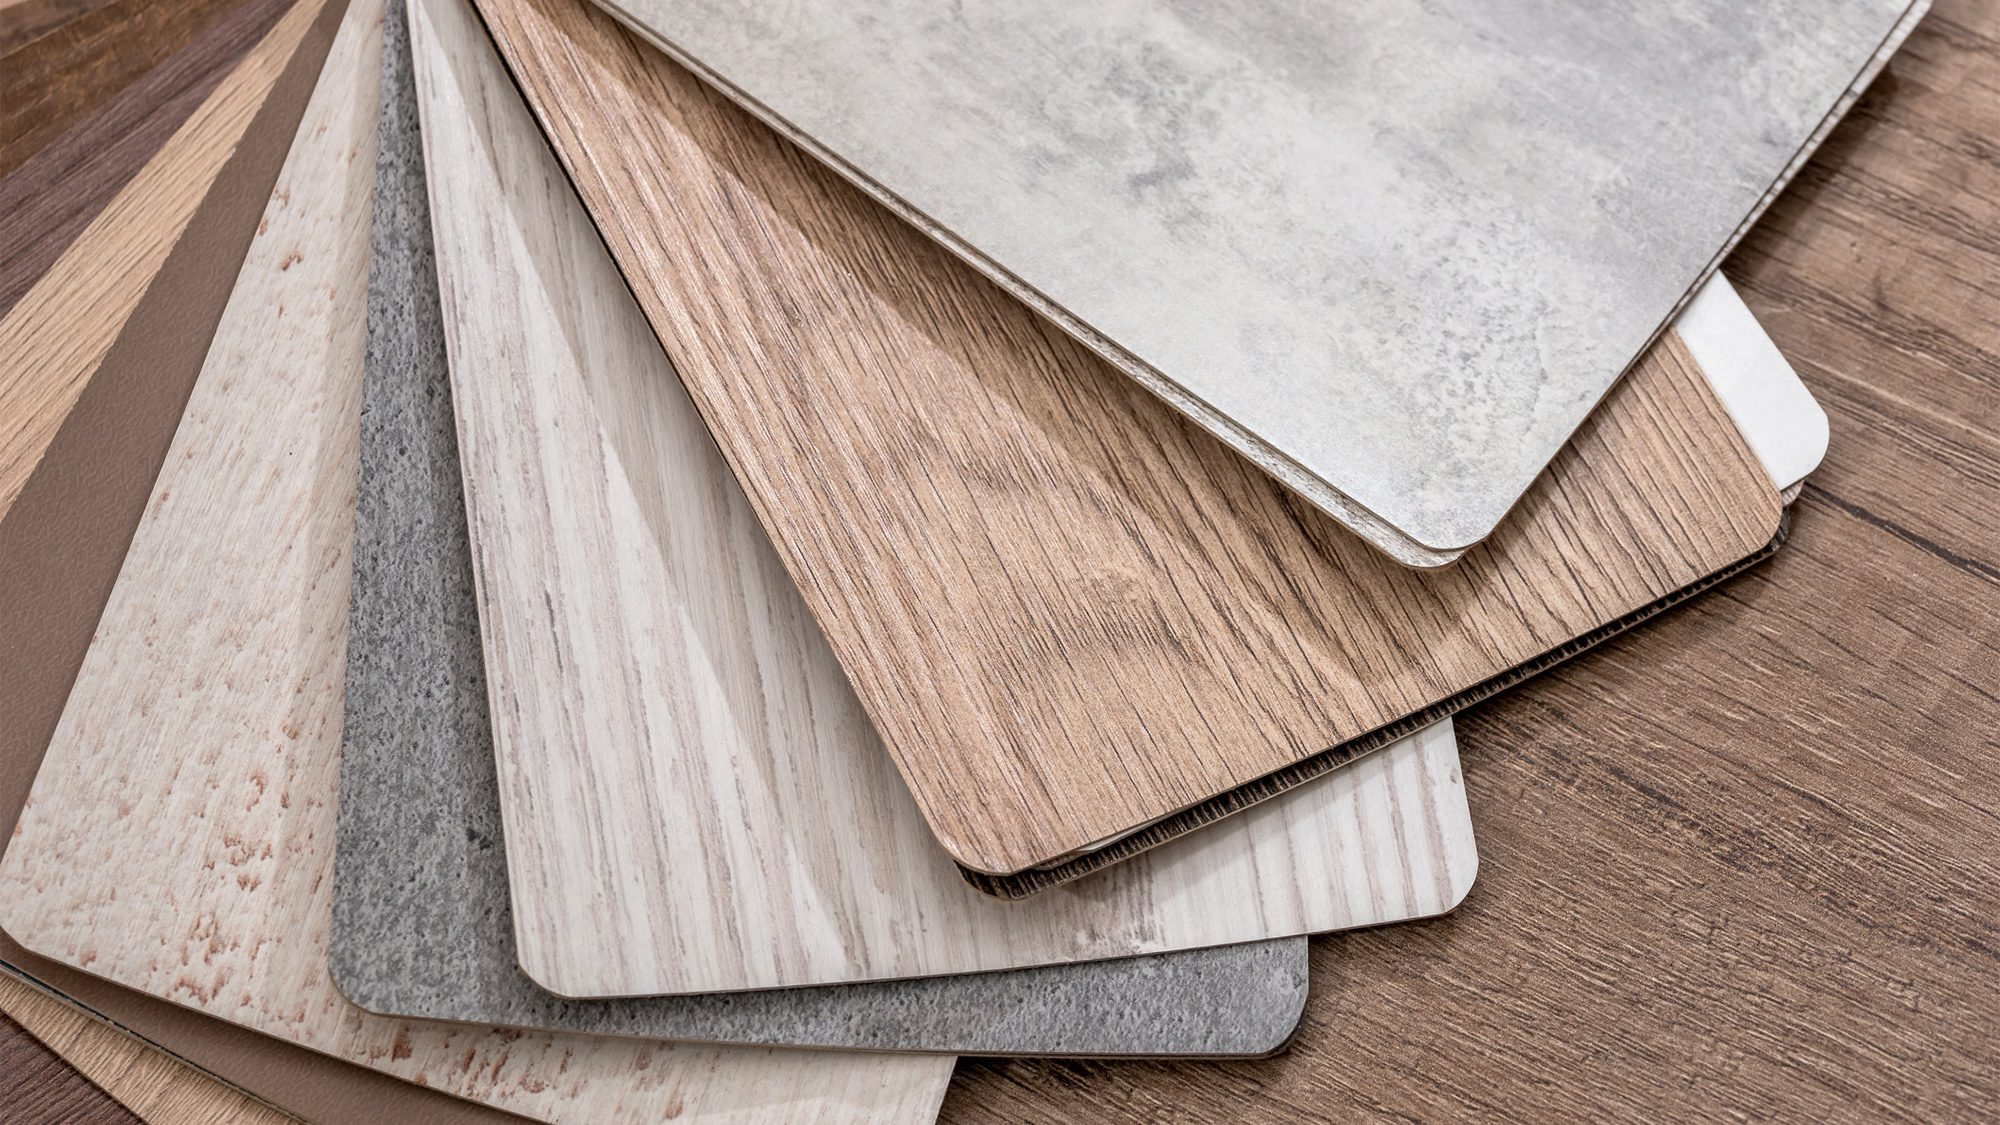 wood look tile vs wood which flooring is better pros and cons